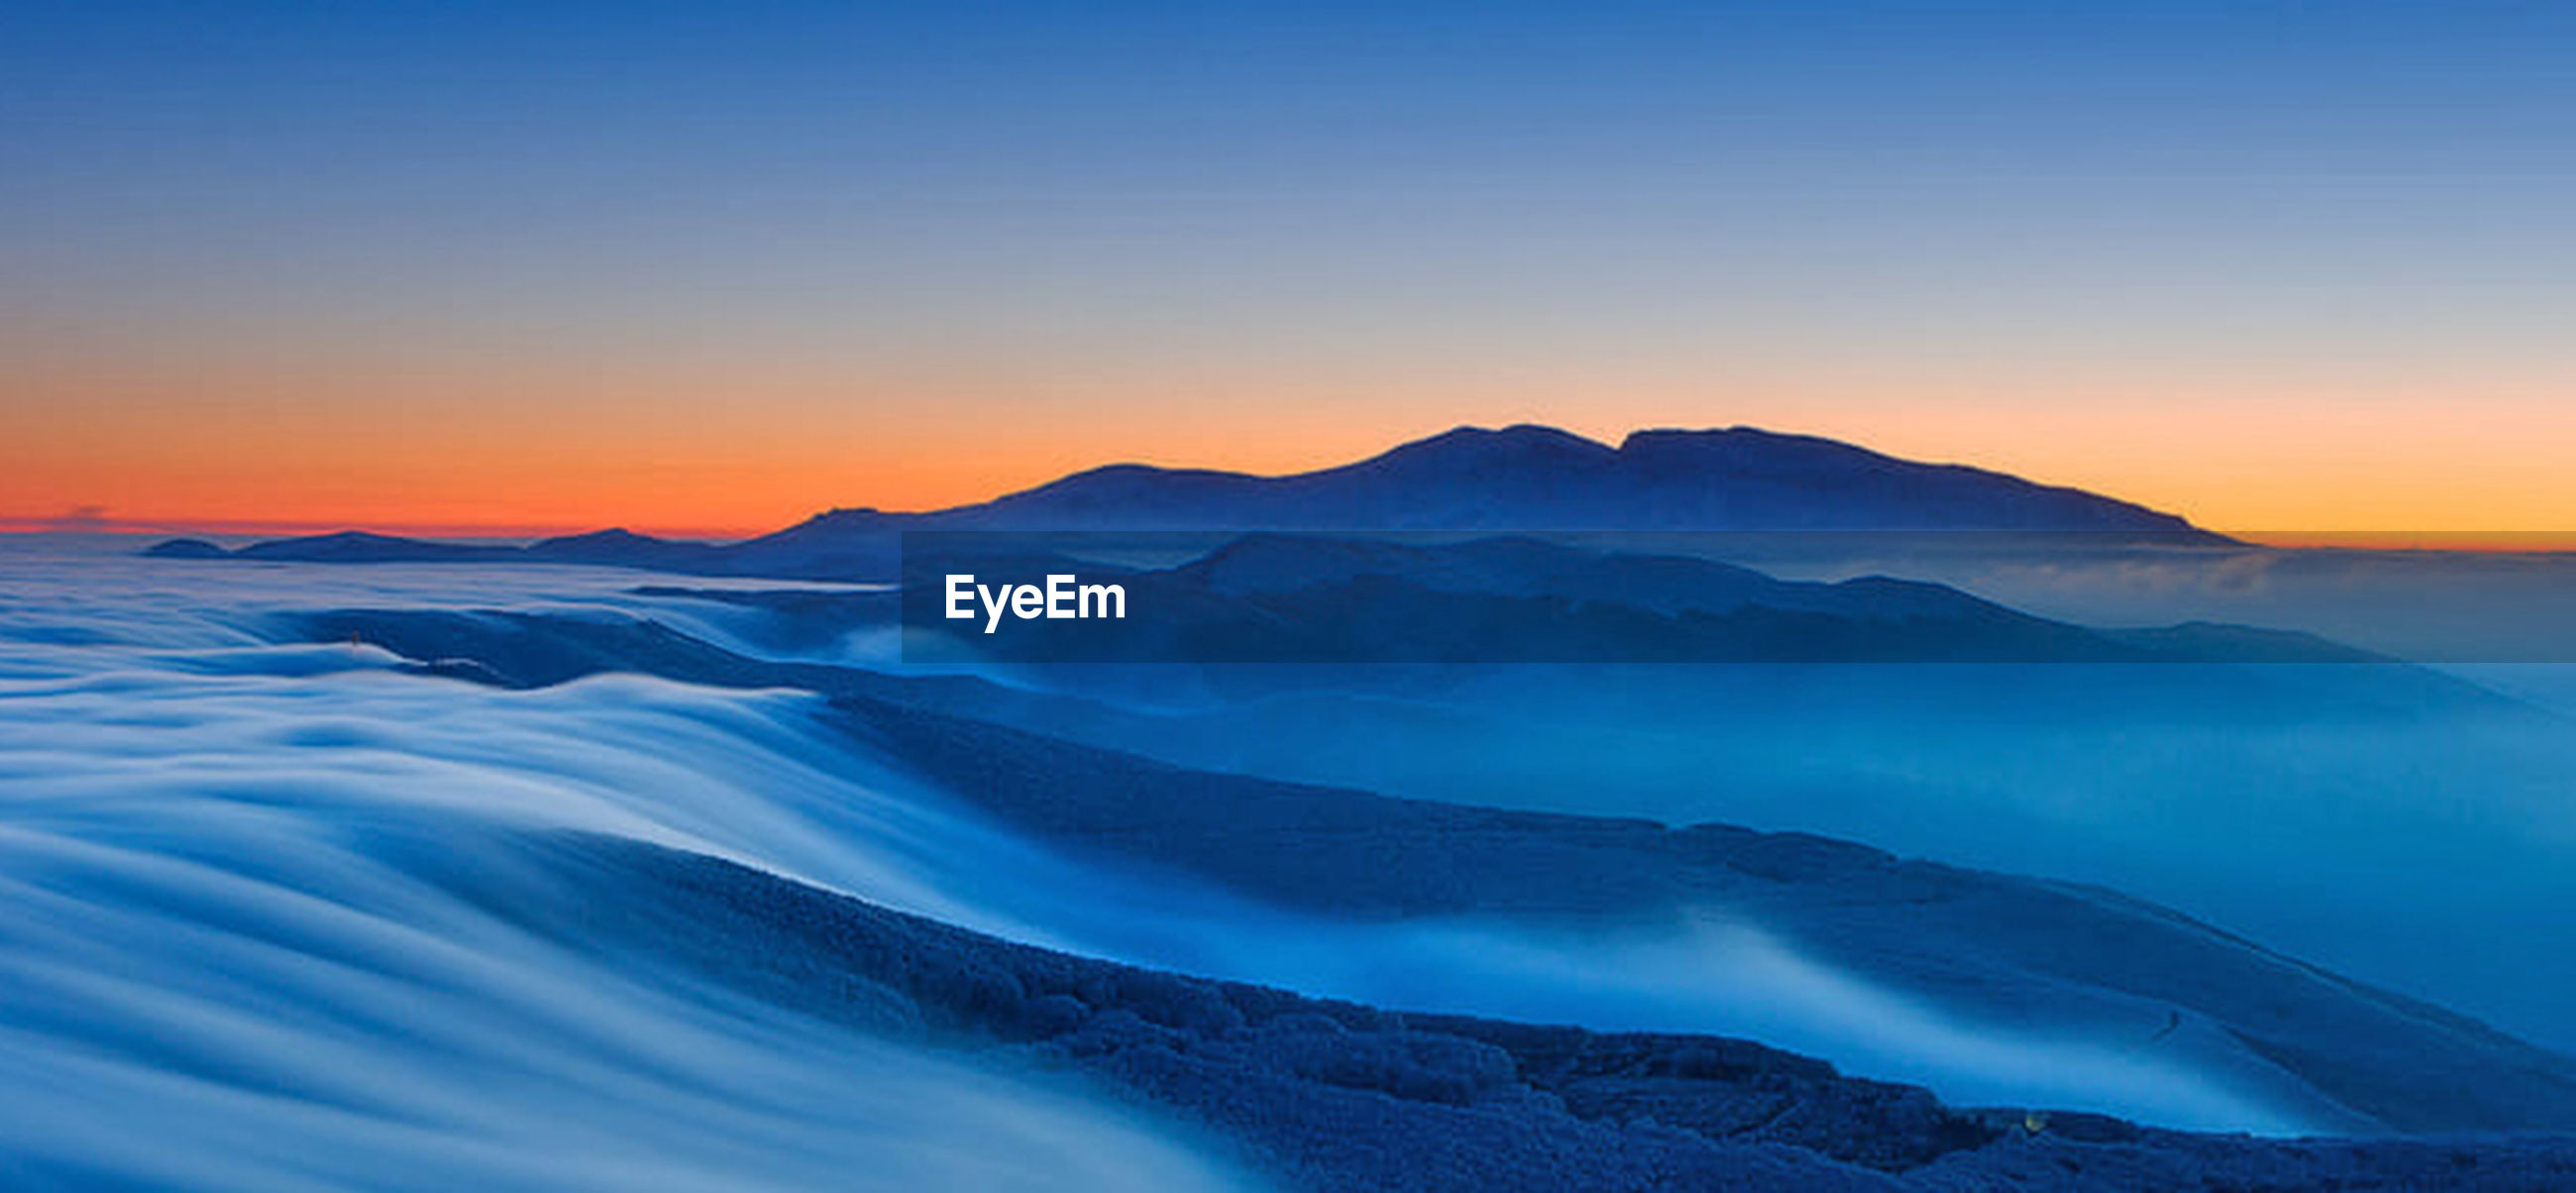 SCENIC VIEW OF MOUNTAINS AGAINST BLUE SKY AT SUNSET